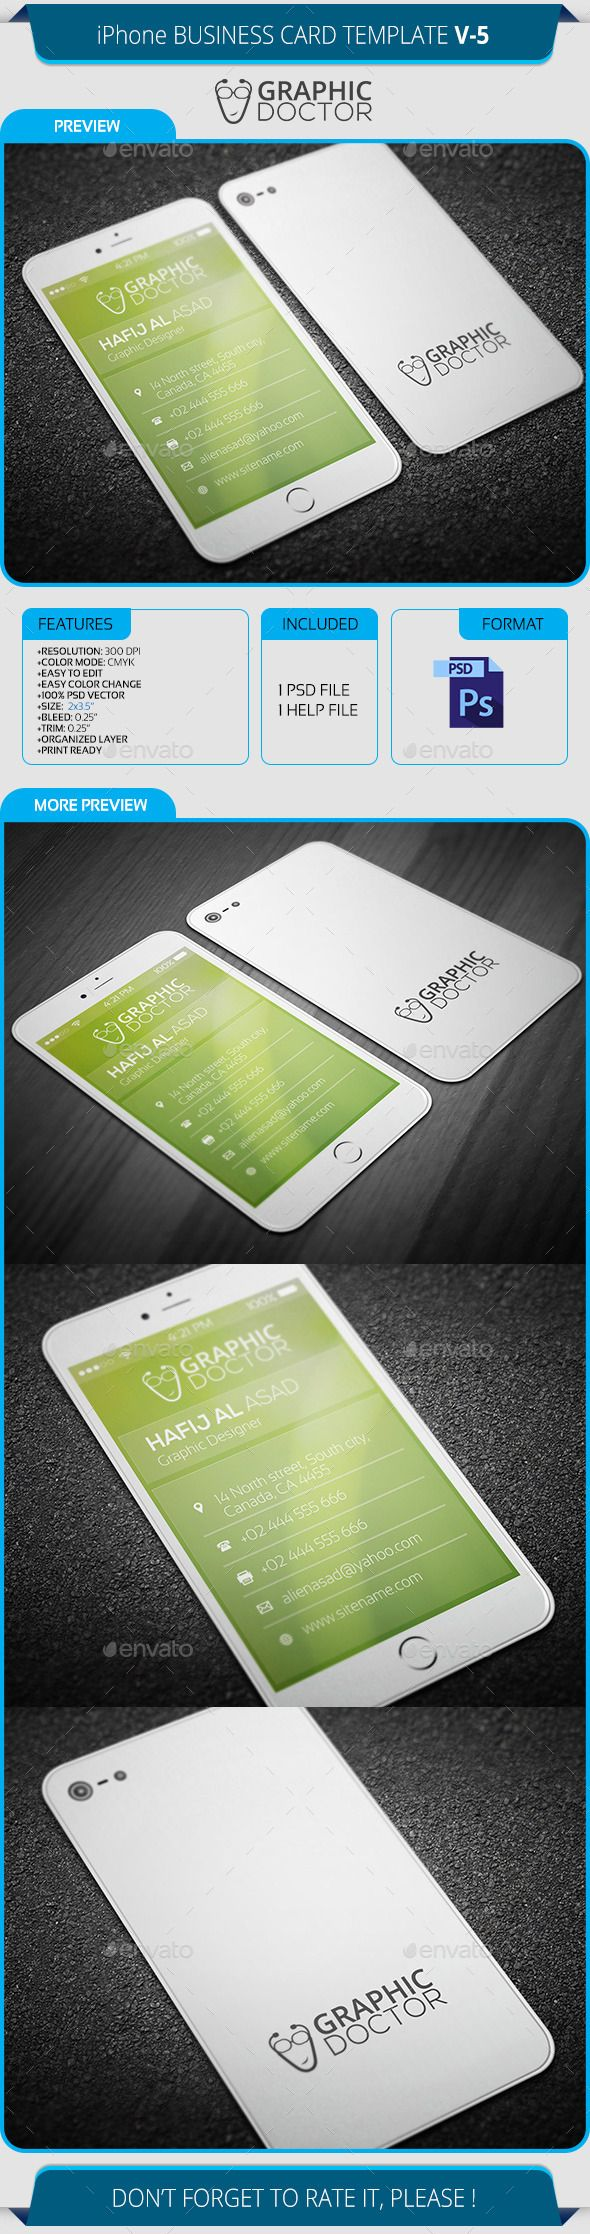 Iphone business card template v 5 card templates business cards iphone business card template v5 photoshop psd smartphone stylish available here reheart Gallery